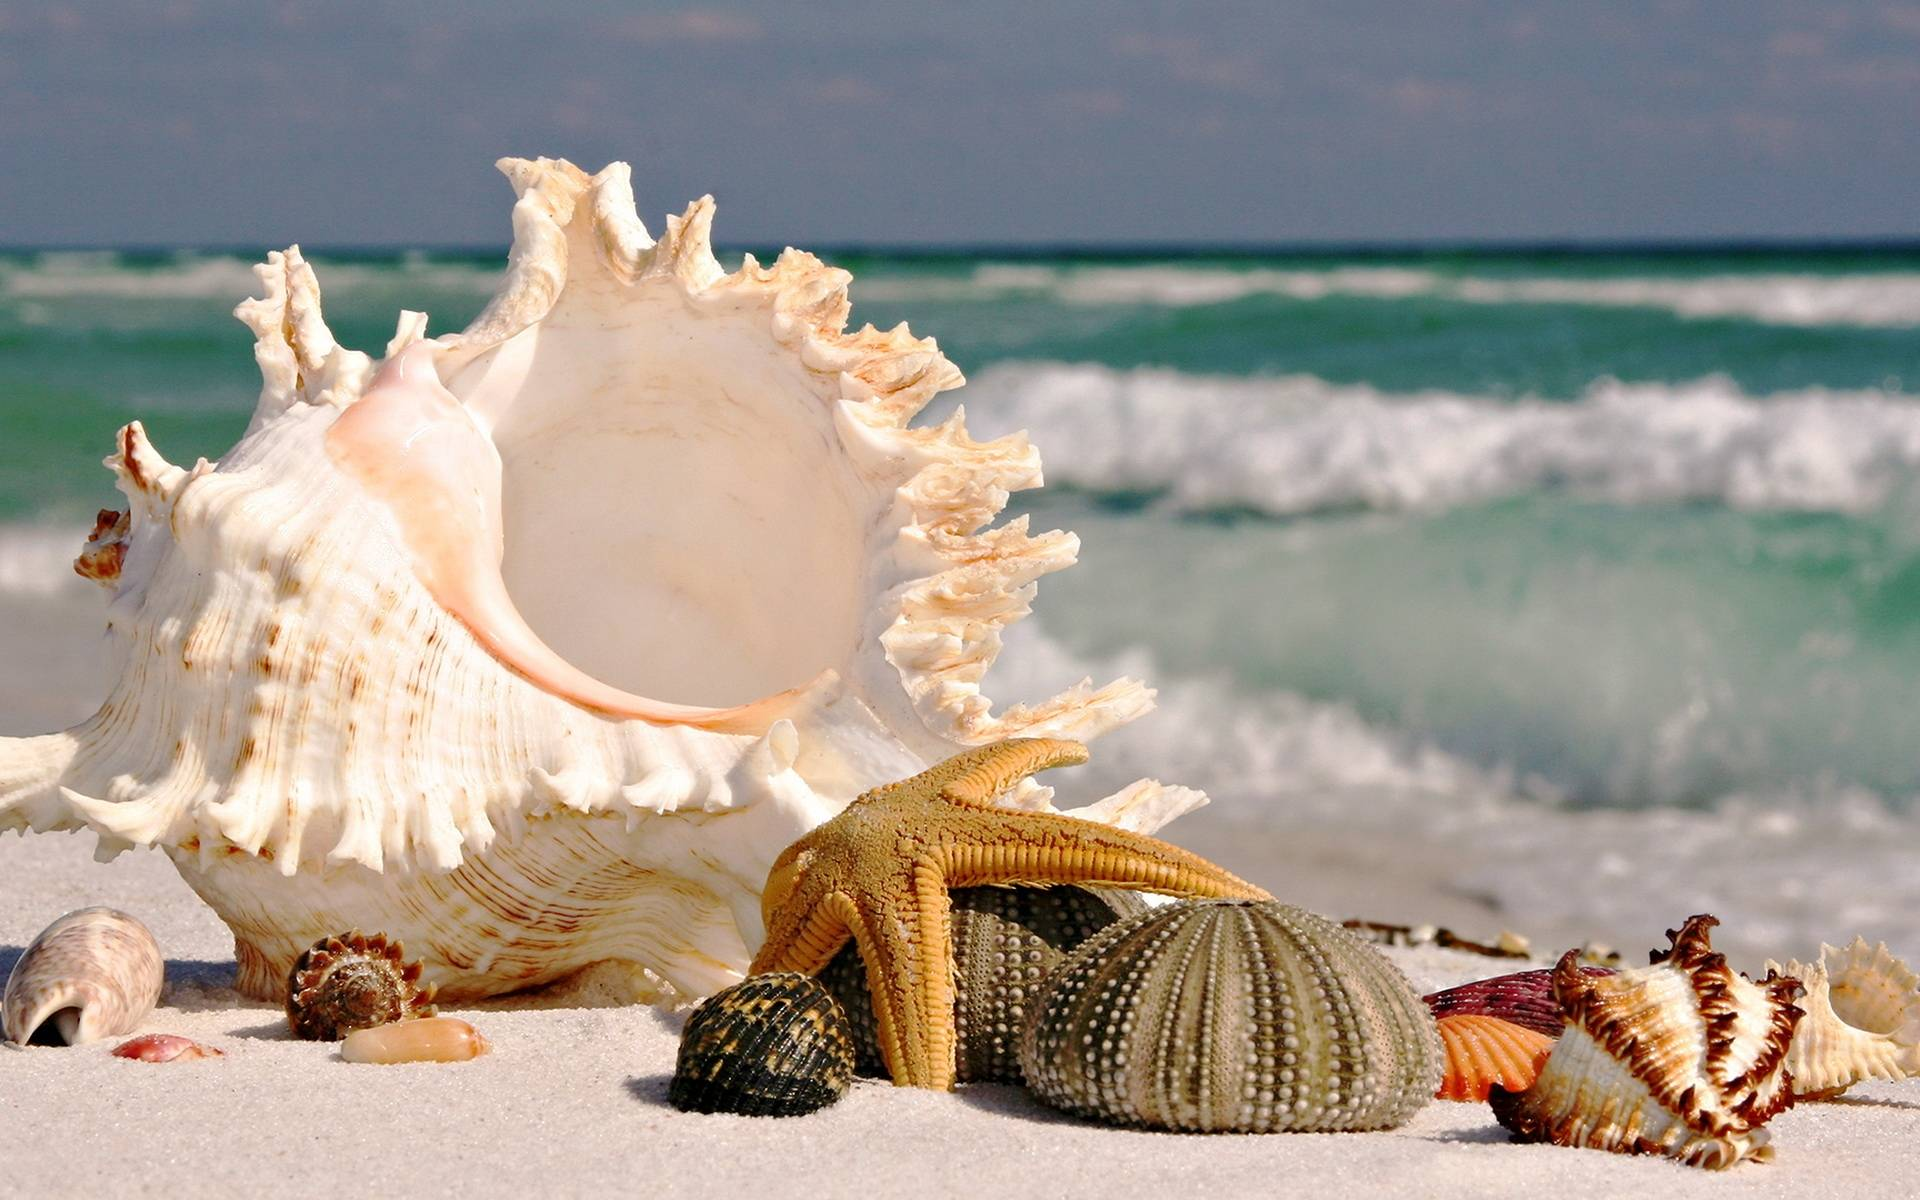 Beautiful Seashell Wallpaper